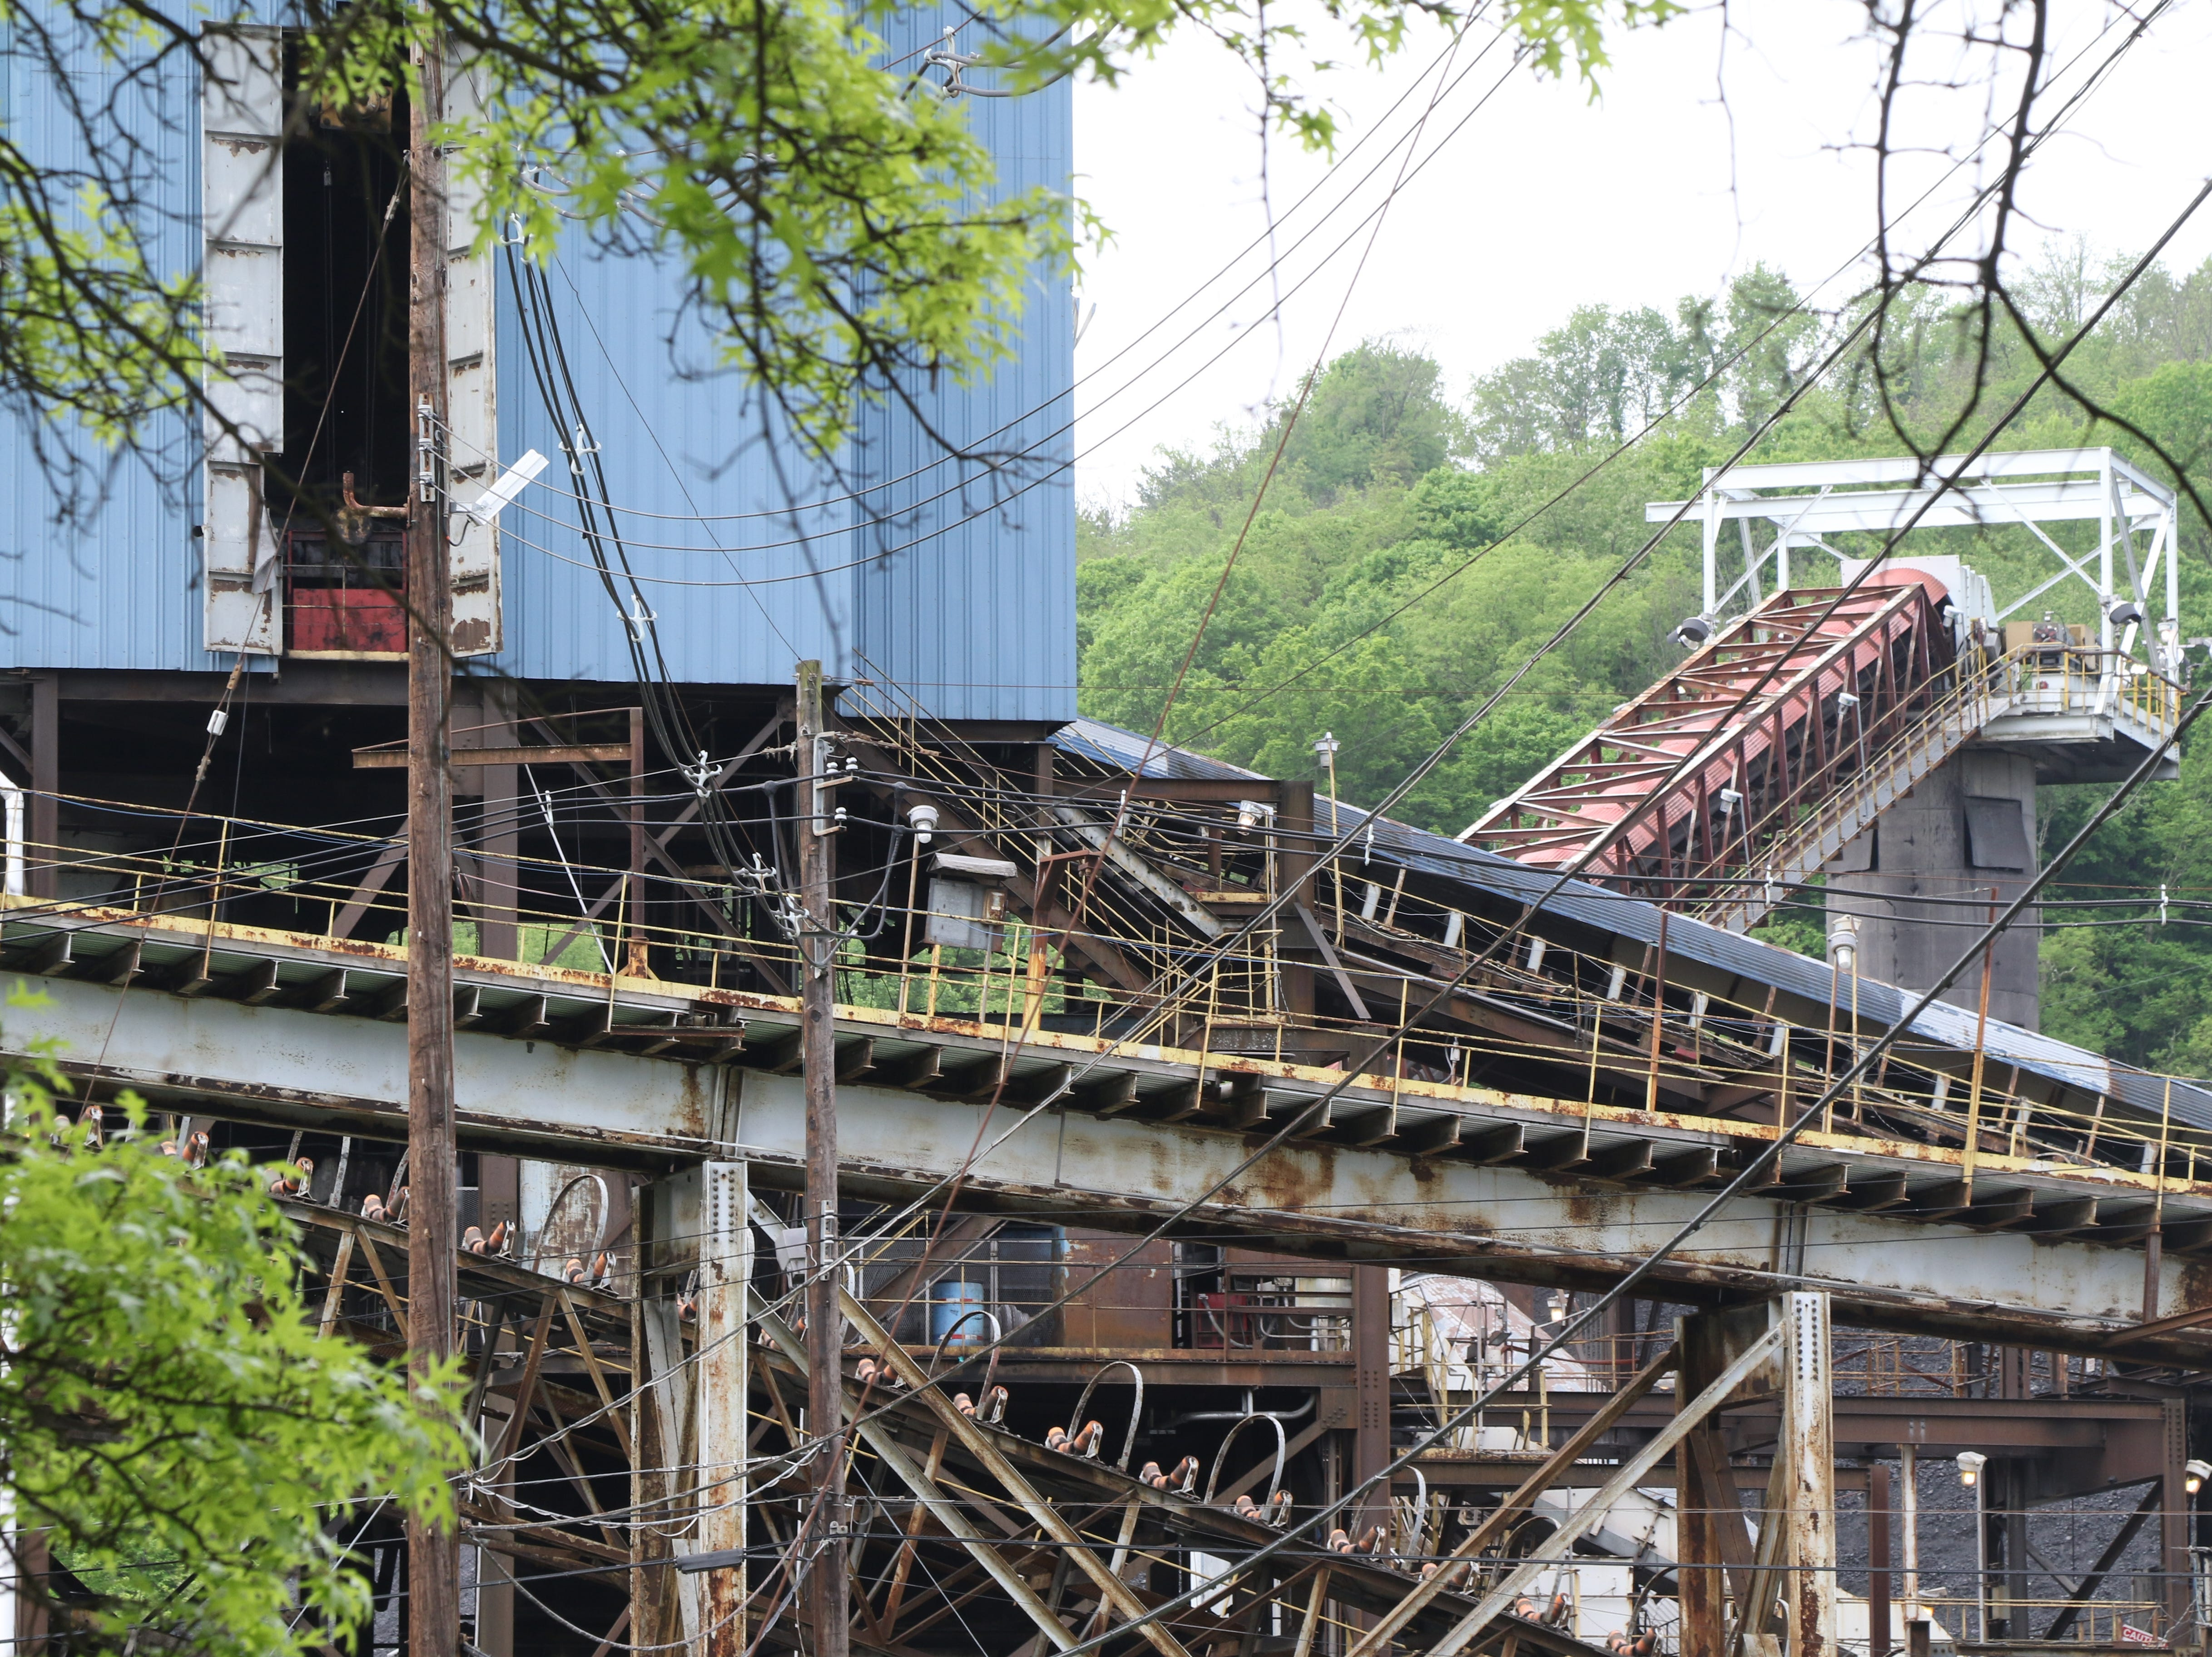 The delivery and processing structure at the Cumberland Mine, set into a ring of rolling hills about 10 miles south of Waynesburg.